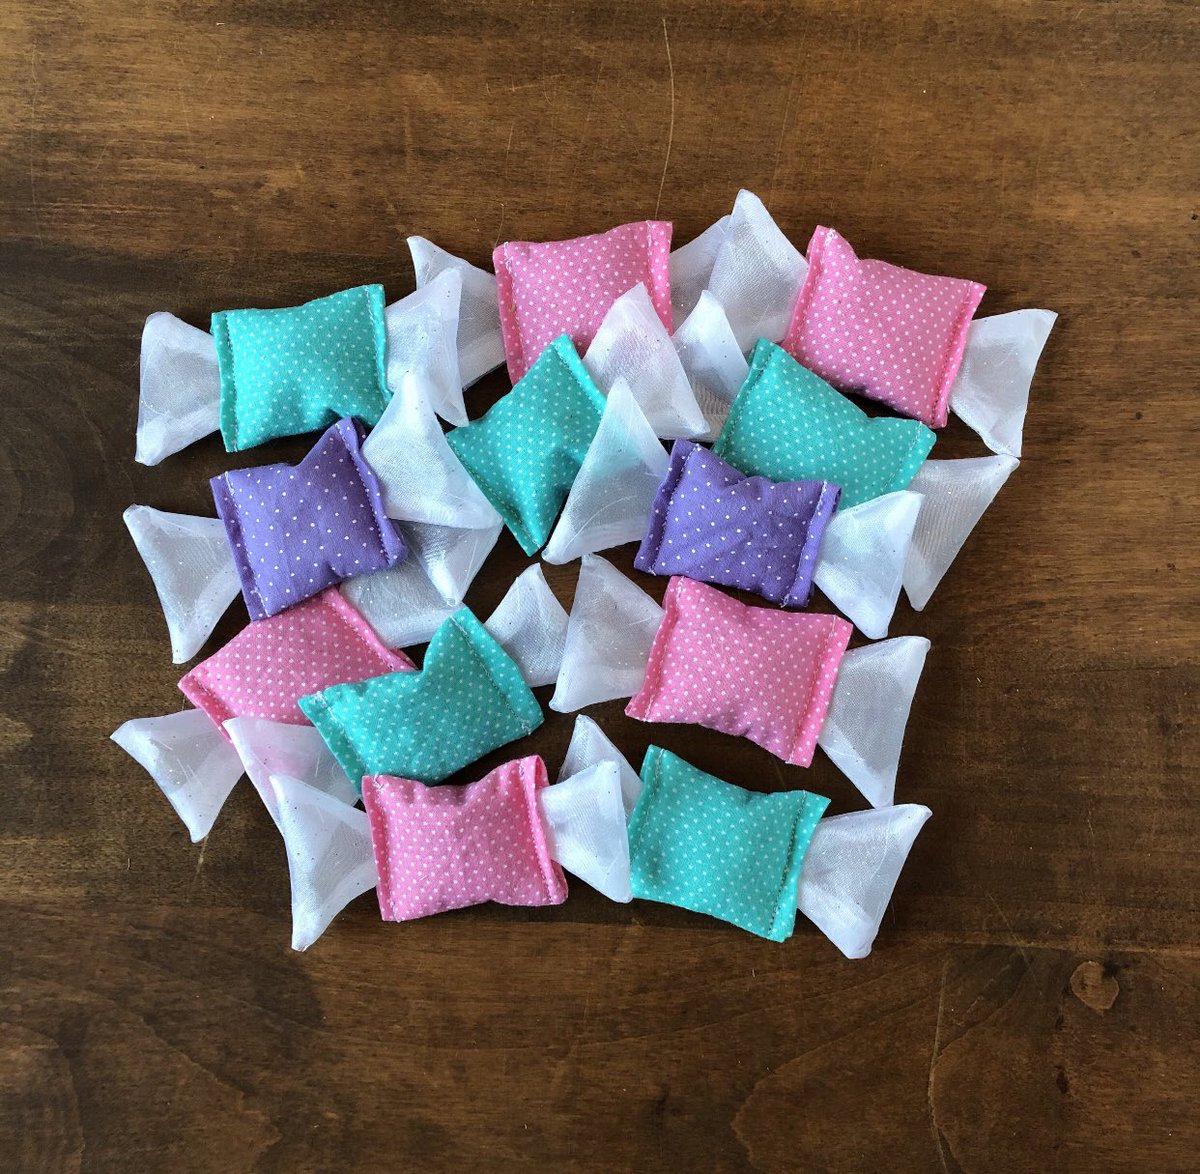 Looking for the purrfect gift for your furry Valentine? 😻  Catnip candy will make kitty's heart go pitter patter with its potent organic catnip and silvervine filling and fun toy design!     #furryvalentine #caturday #catsoftwitter #catmom #catdad